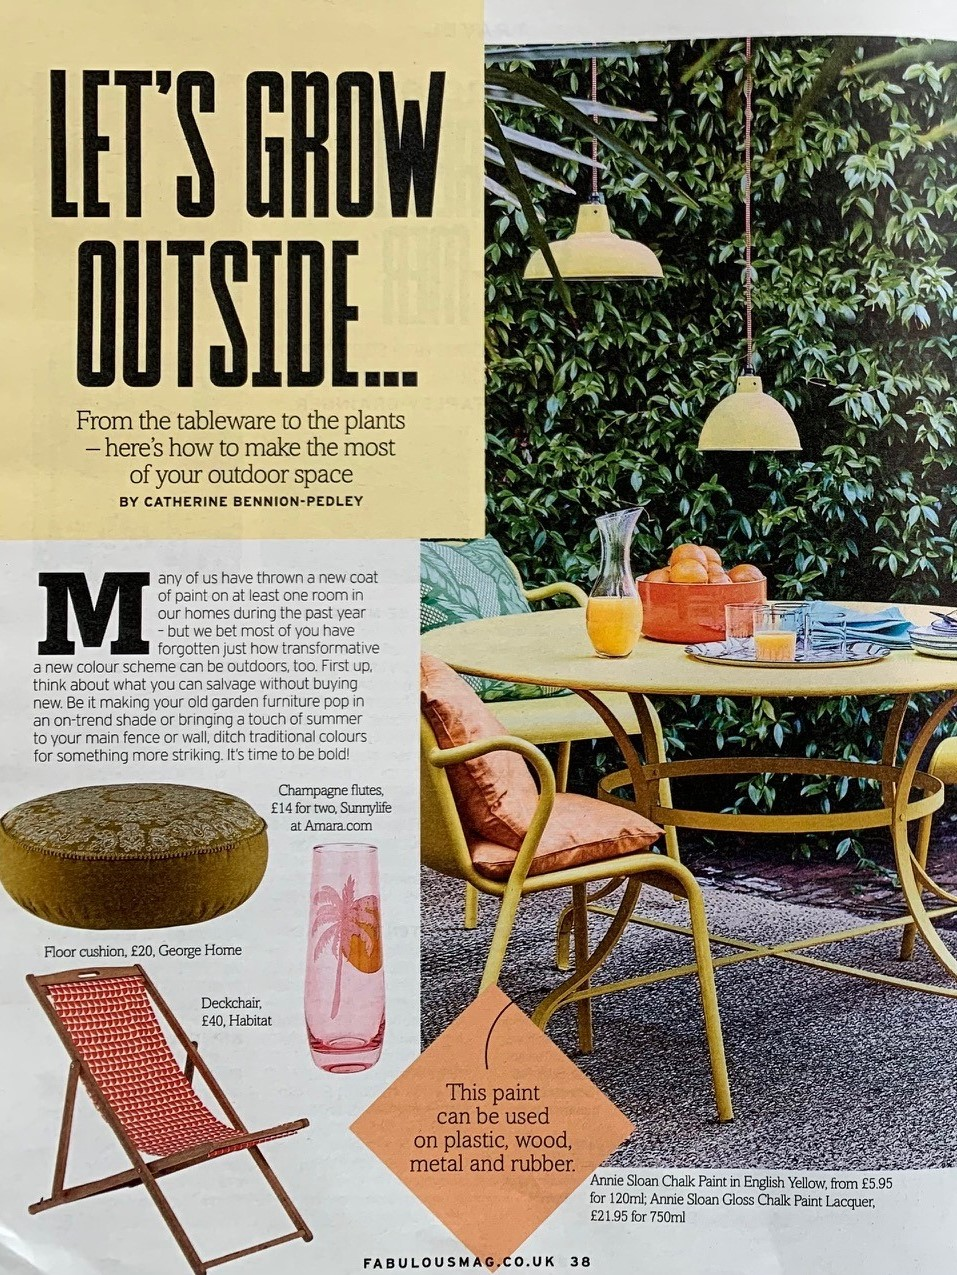 Make old garden furniture pop with a coat of Annie Sloan's Chalk Paint, says Fabulous